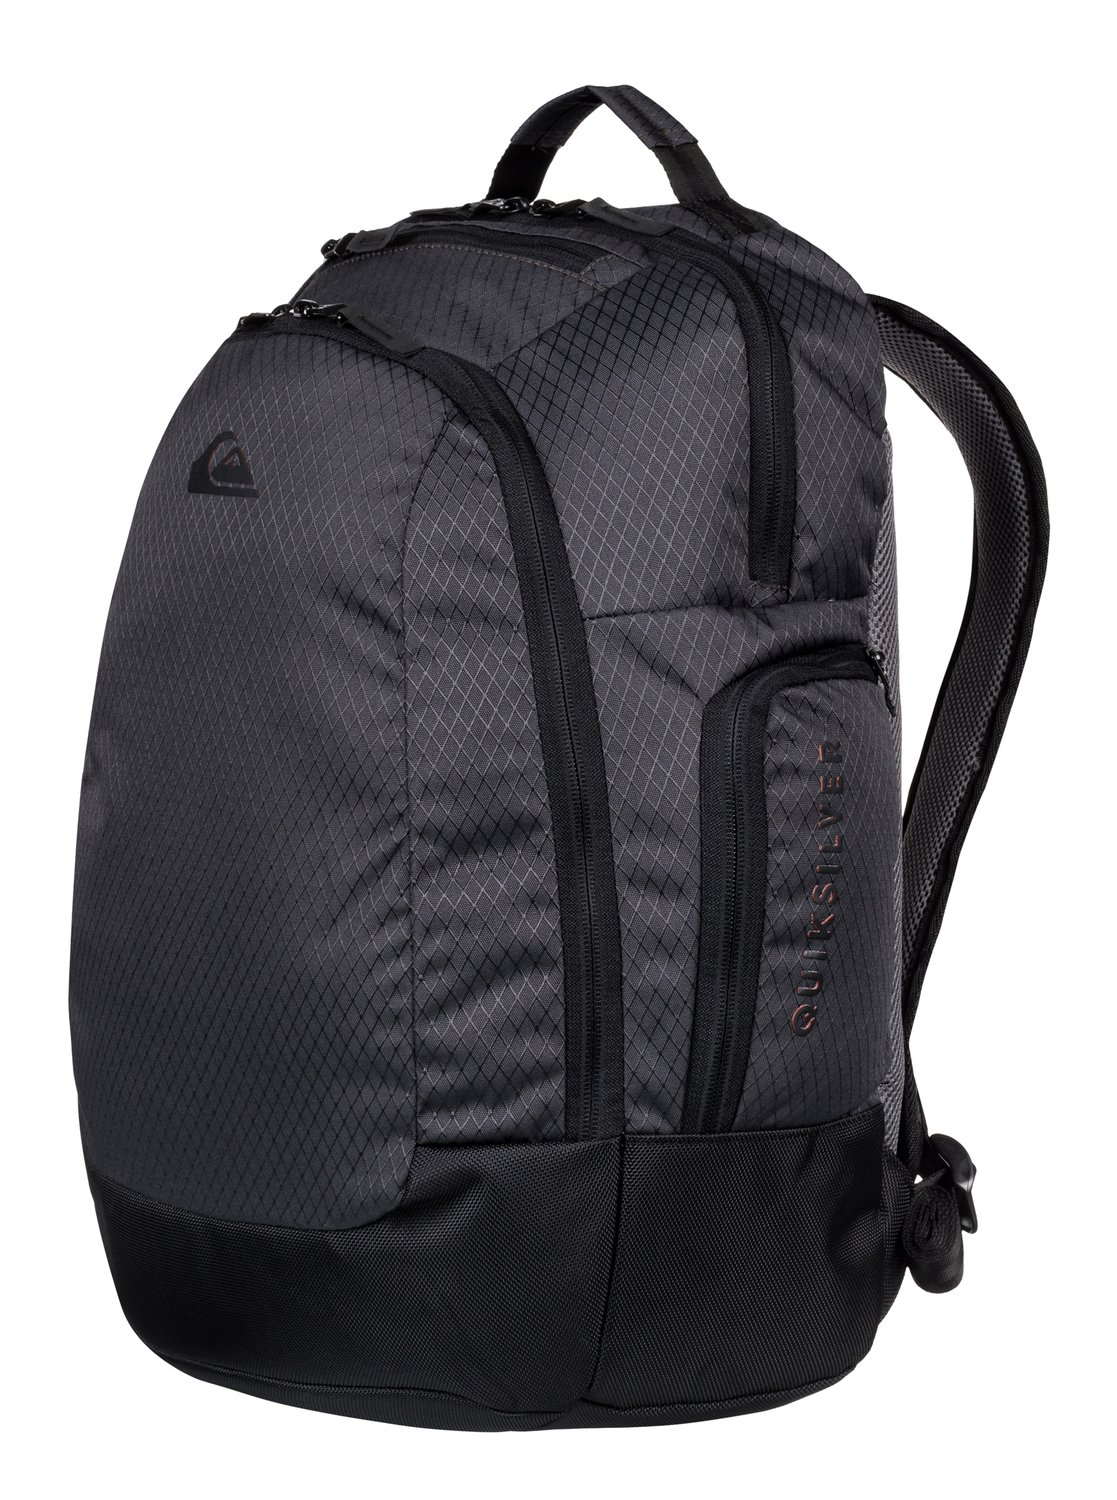 Sac à dos Quiksilver 1969 Special Plus Dark Charcoal noir zKu0Be0